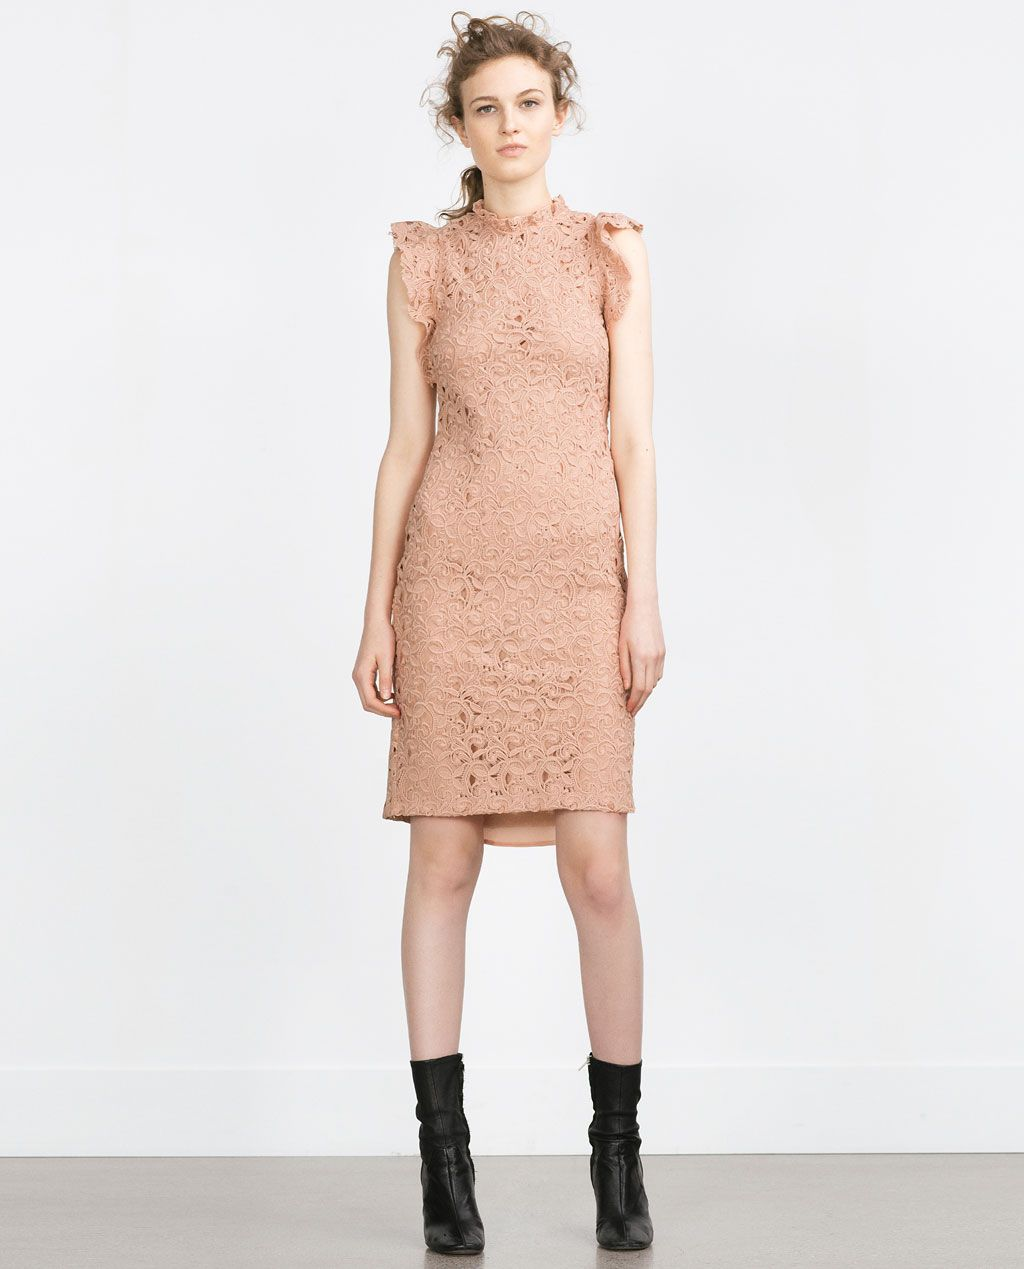 49bf755410 Image 1 of TUBE DRESS WITH GUIPURE LACE FRILL from Zara